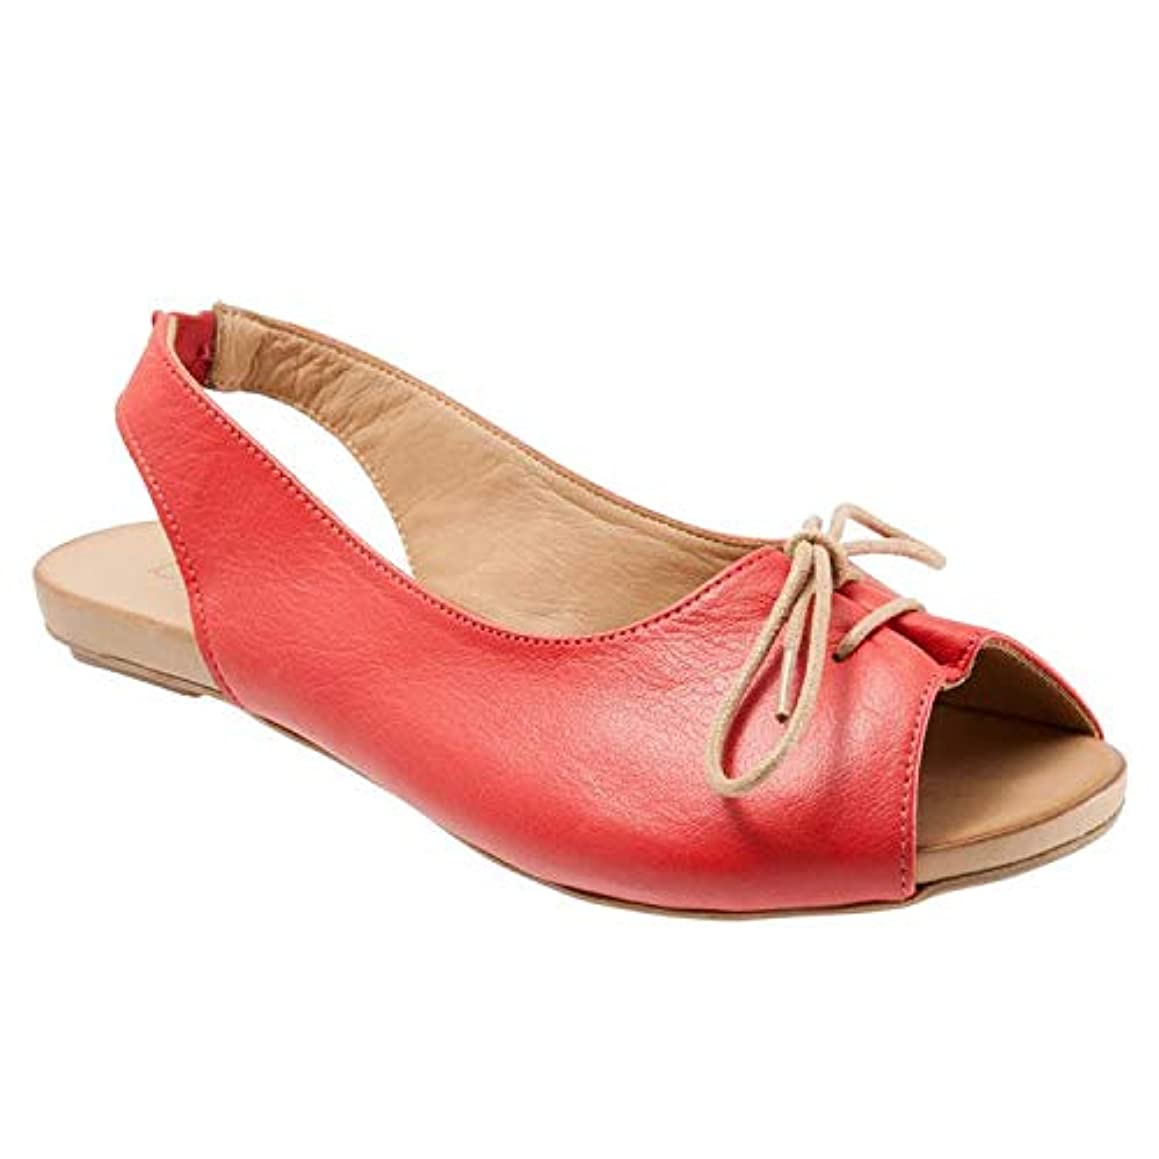 Women Peep Toe Flat Sandal - Ladies Casual Fish Mouth Slingback Sandals - Summer Party Wedding Sandal (9, Red)